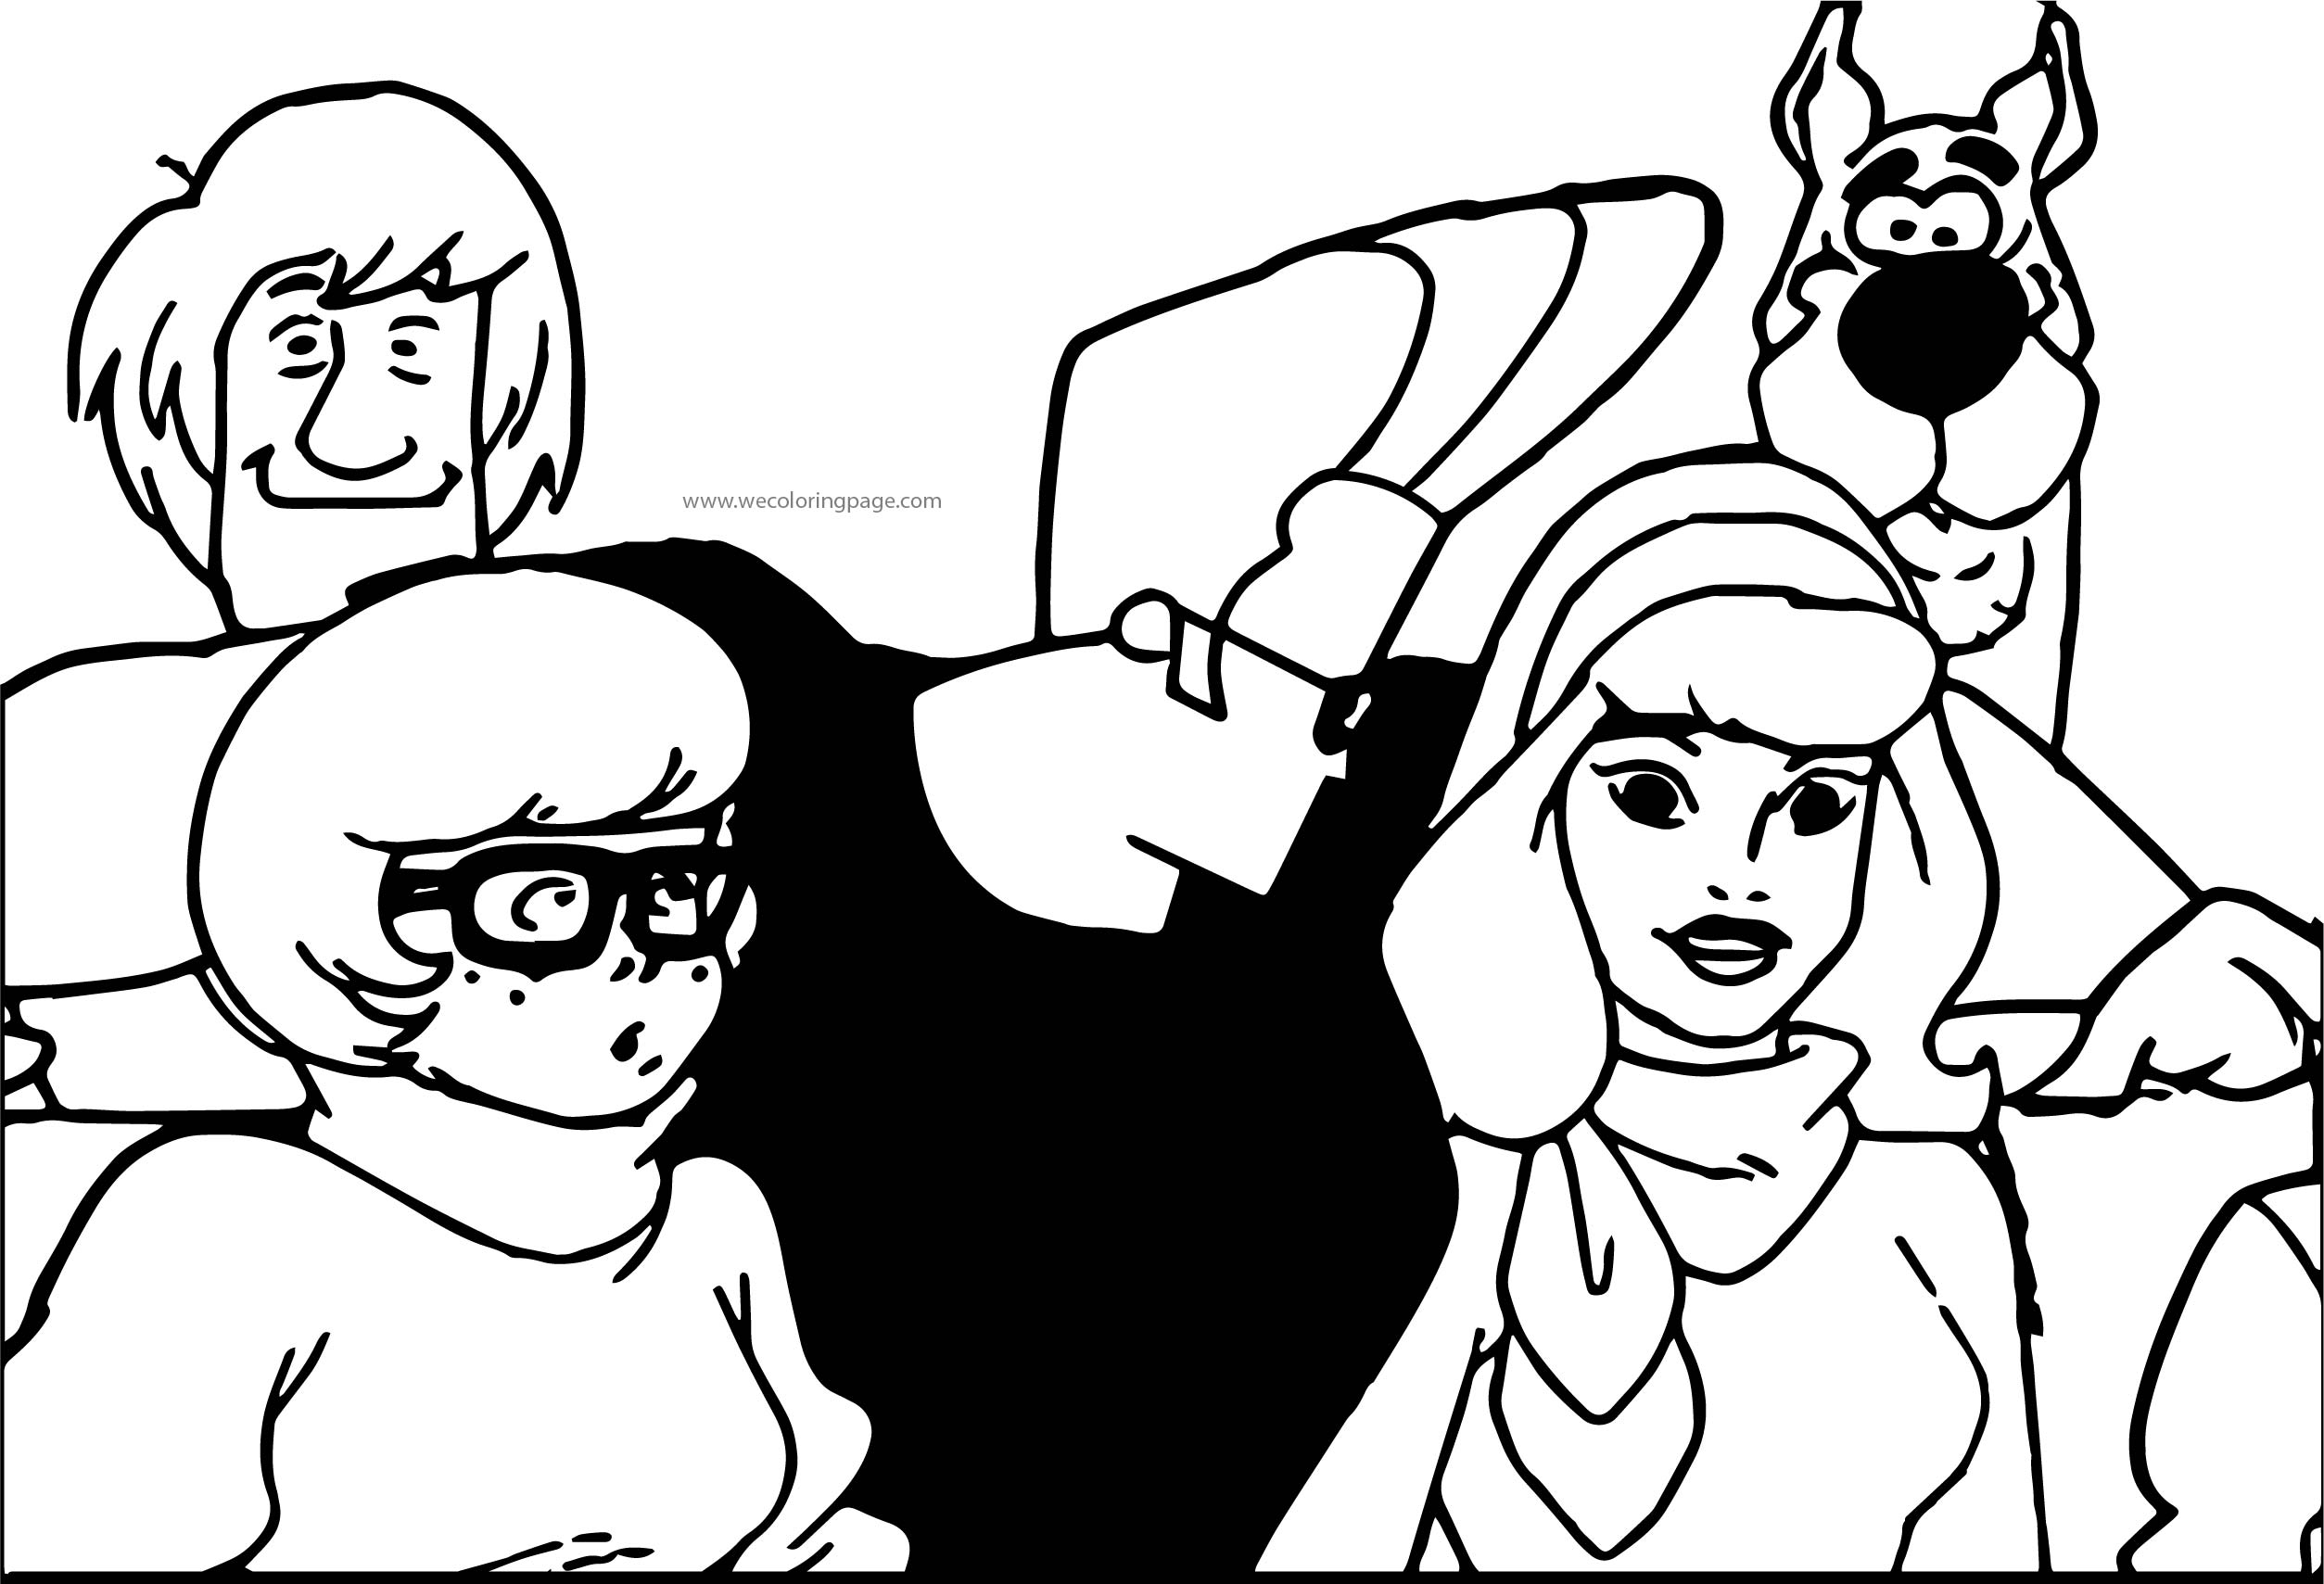 Best Scooby Doo Episode Johanny Bravo Coloring Page